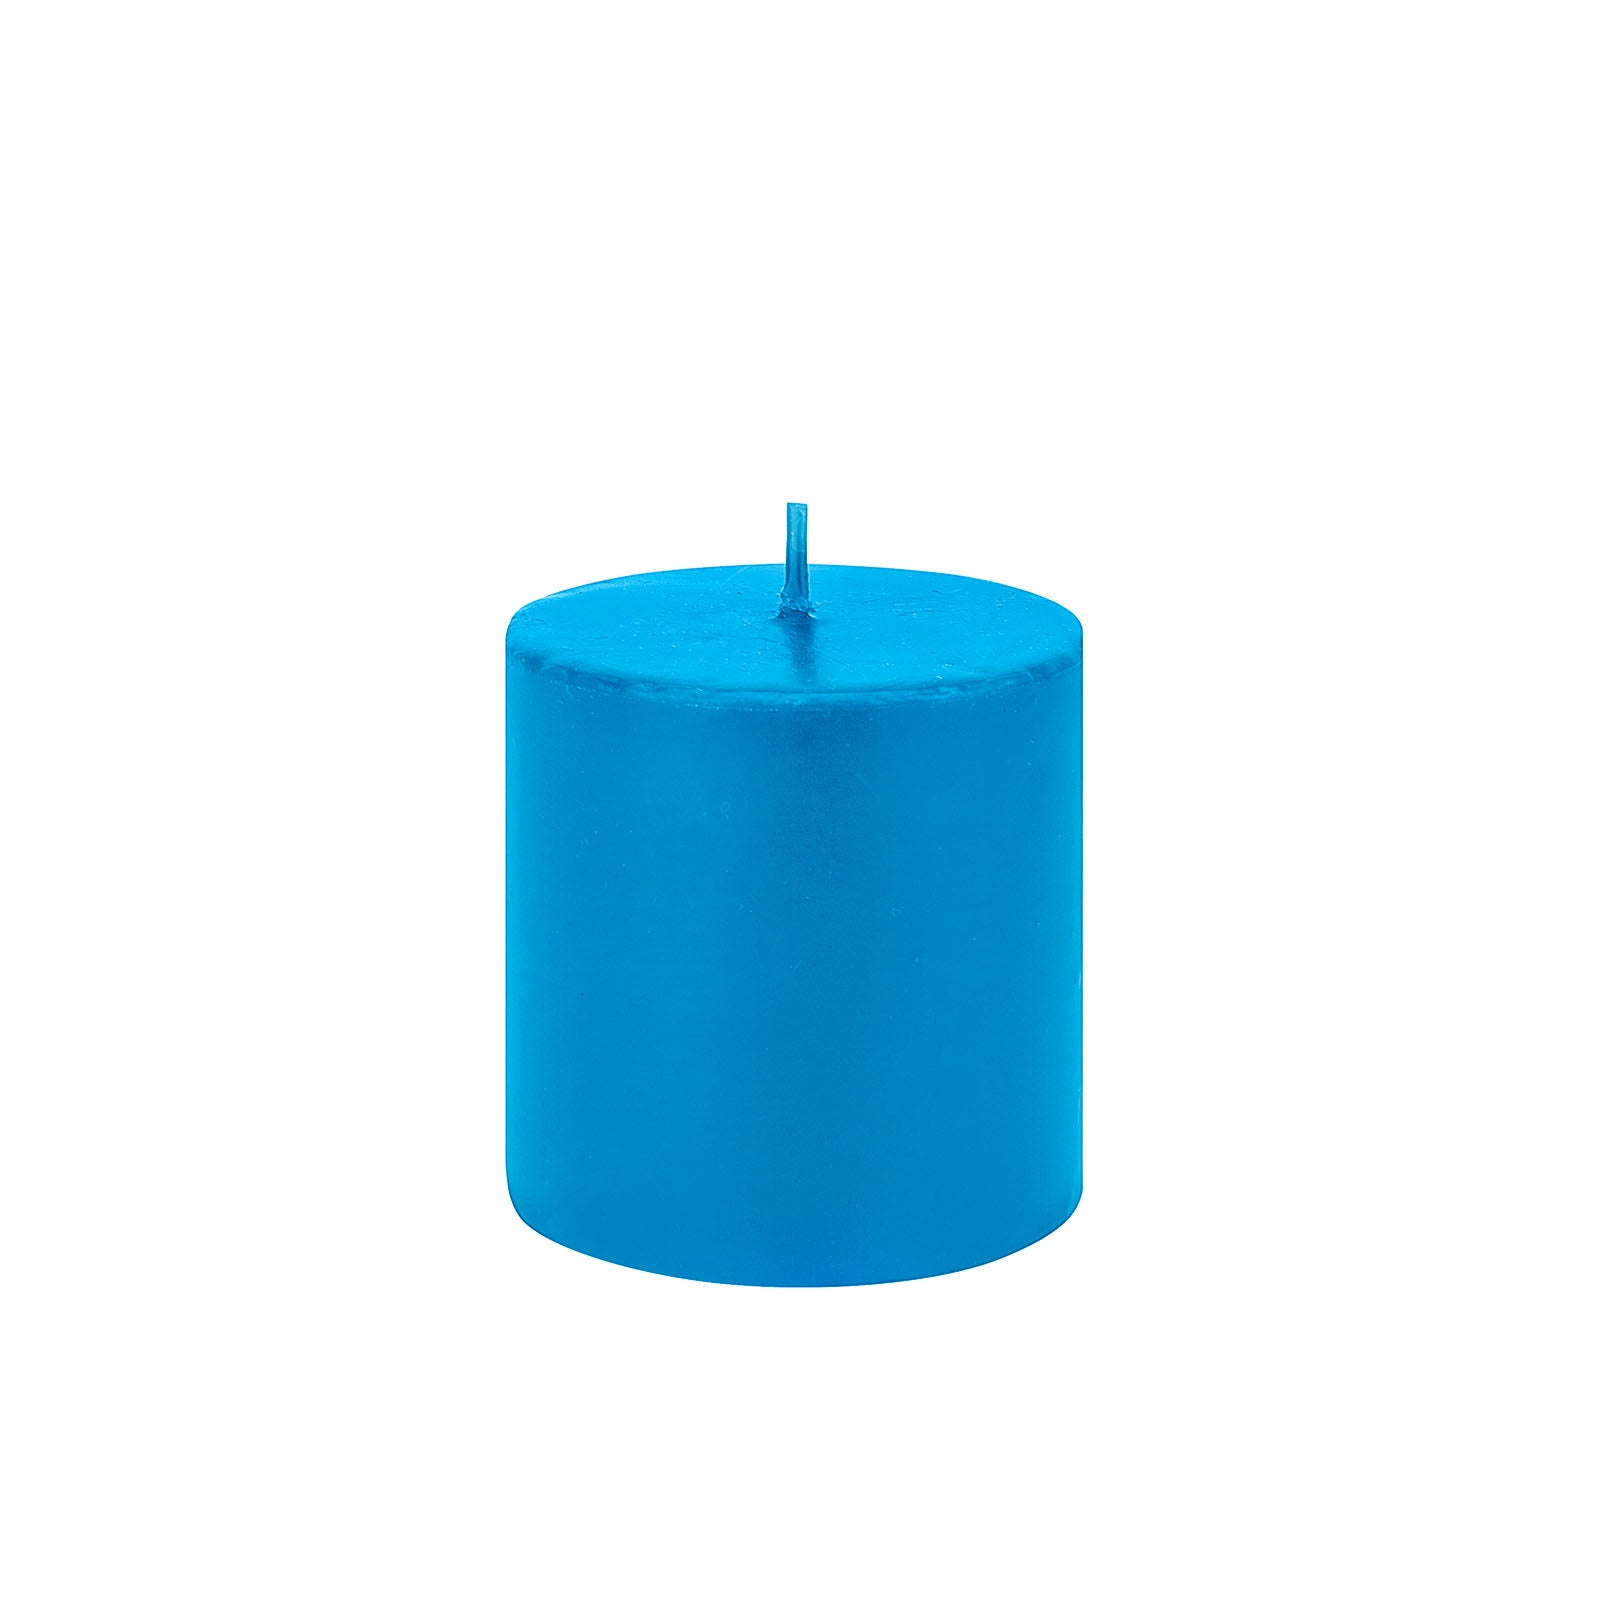 Karaca Sandy Candle Light Blue 7x7 cm 153.01.01.4473 - ebarza